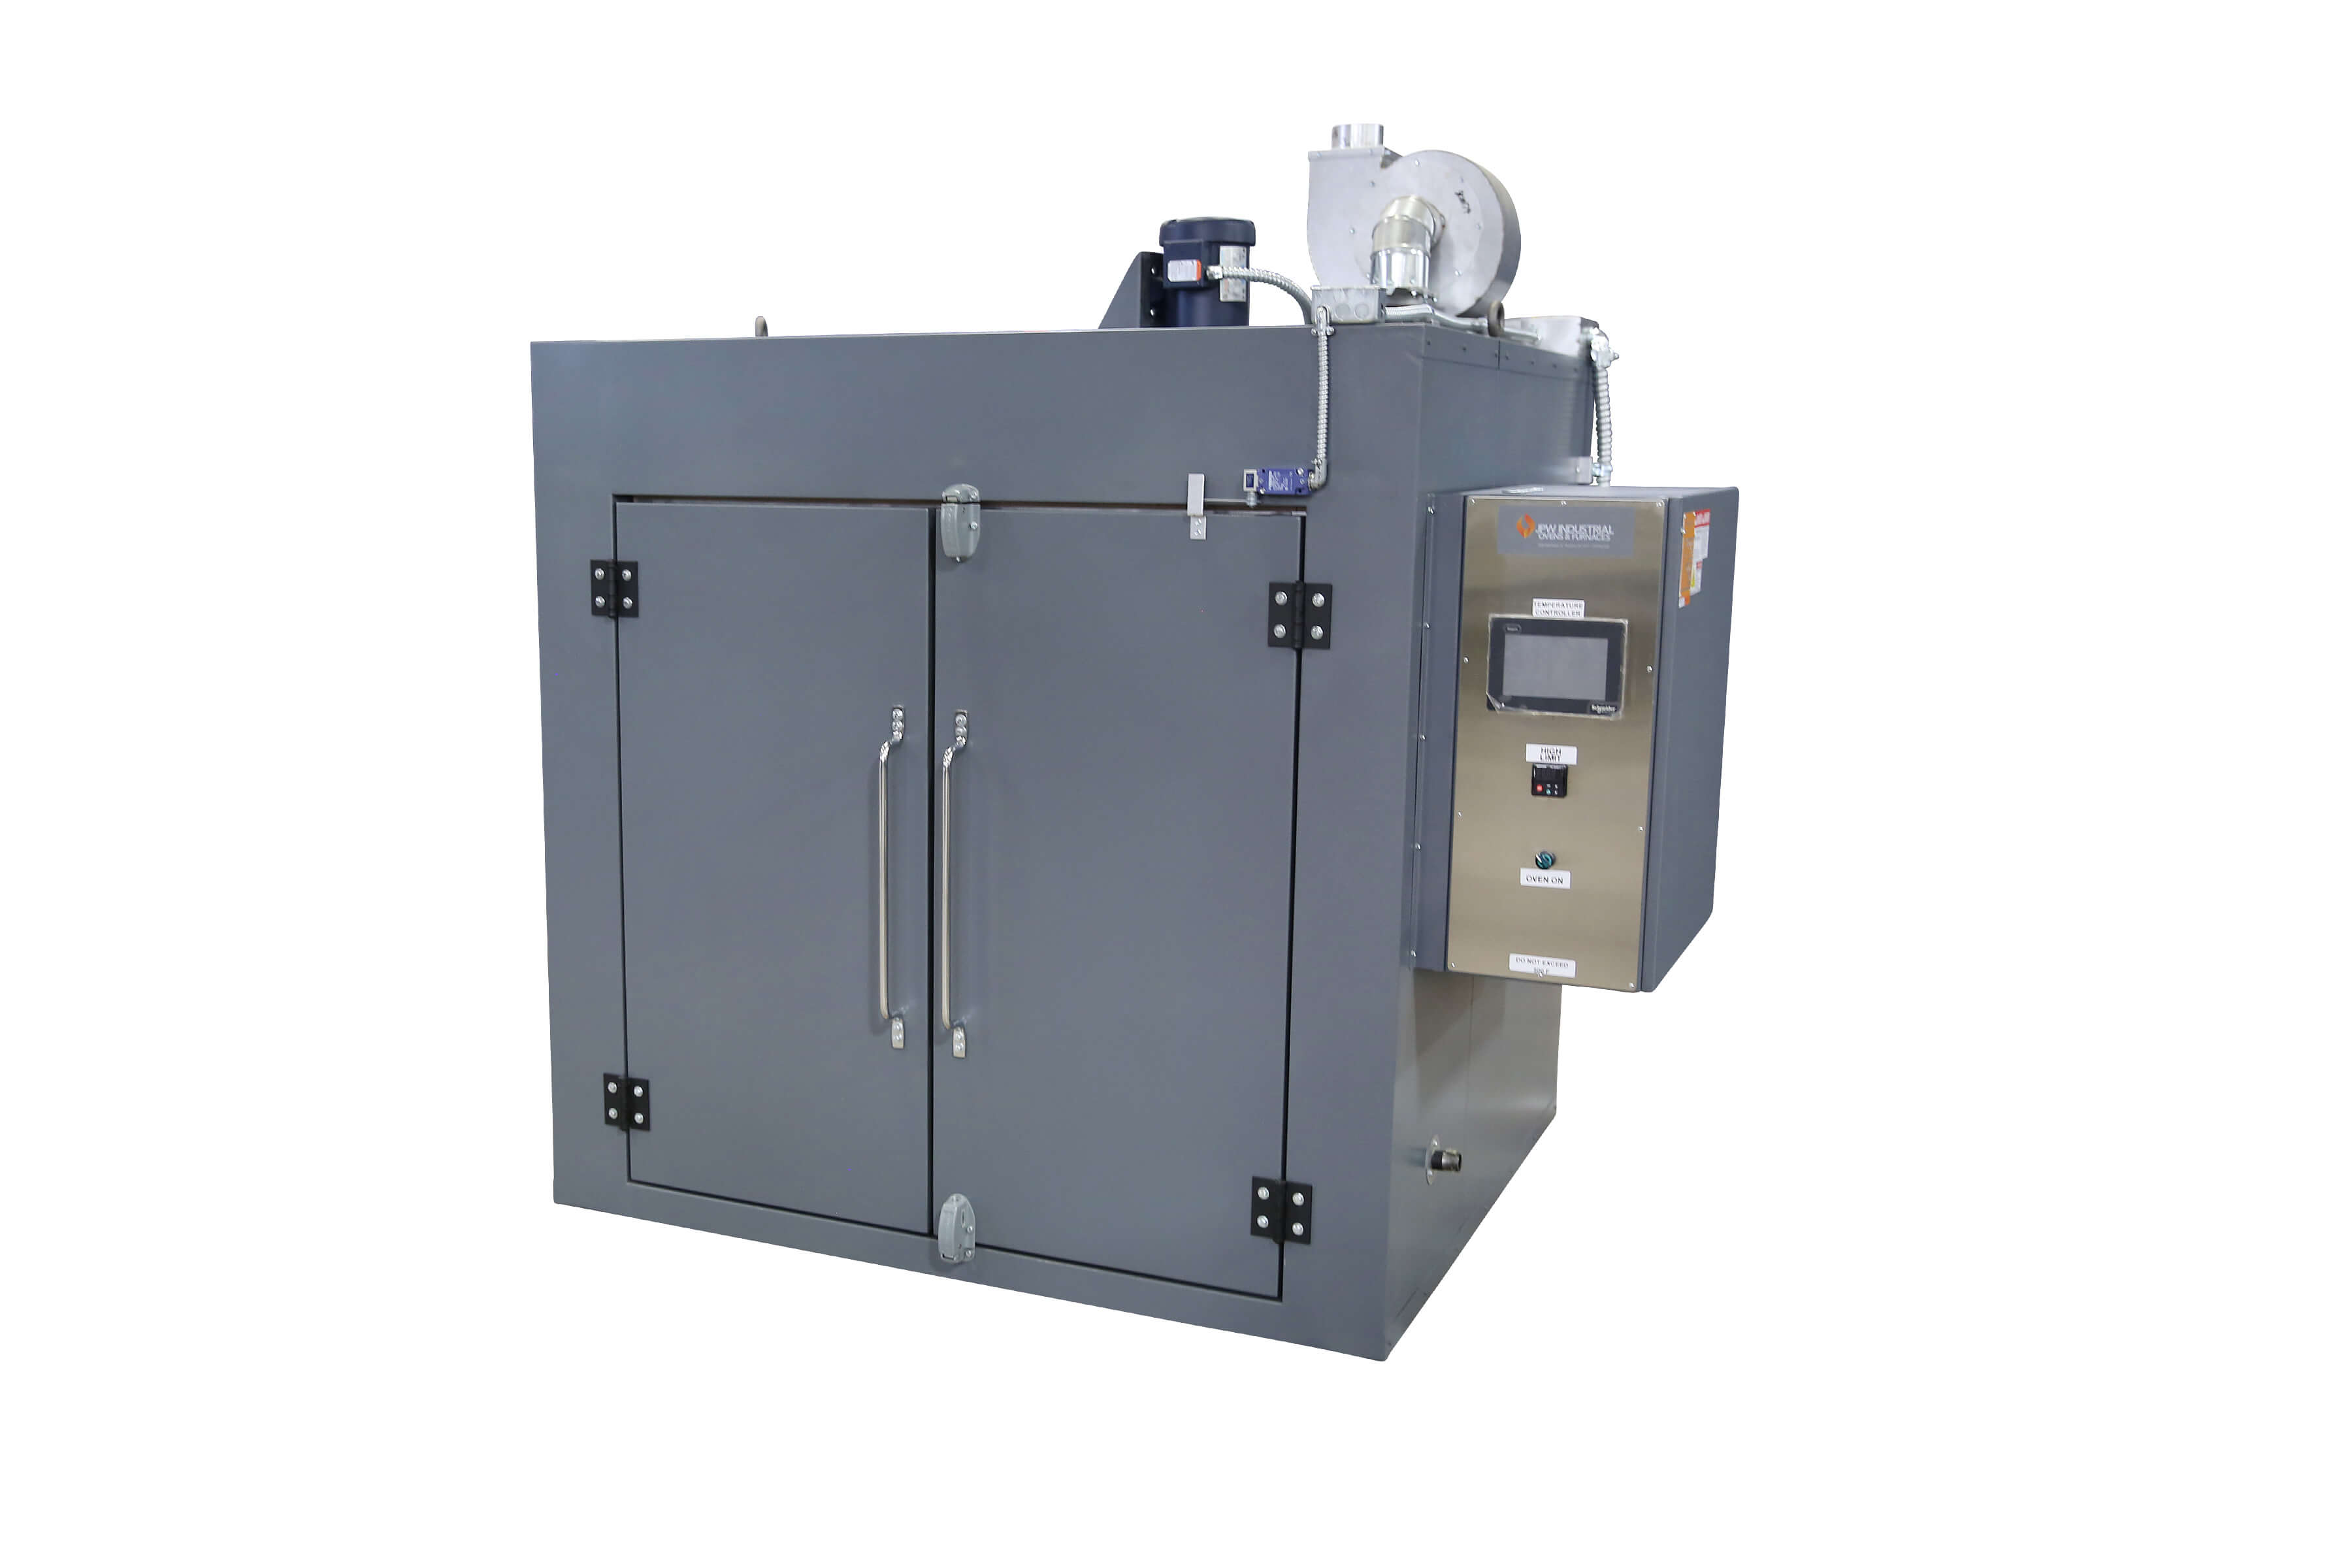 JPW Industrial Ovens and Furnaces Offering Gas-Fired Option on Certain Quick Ship Universal Cabinet Ovens